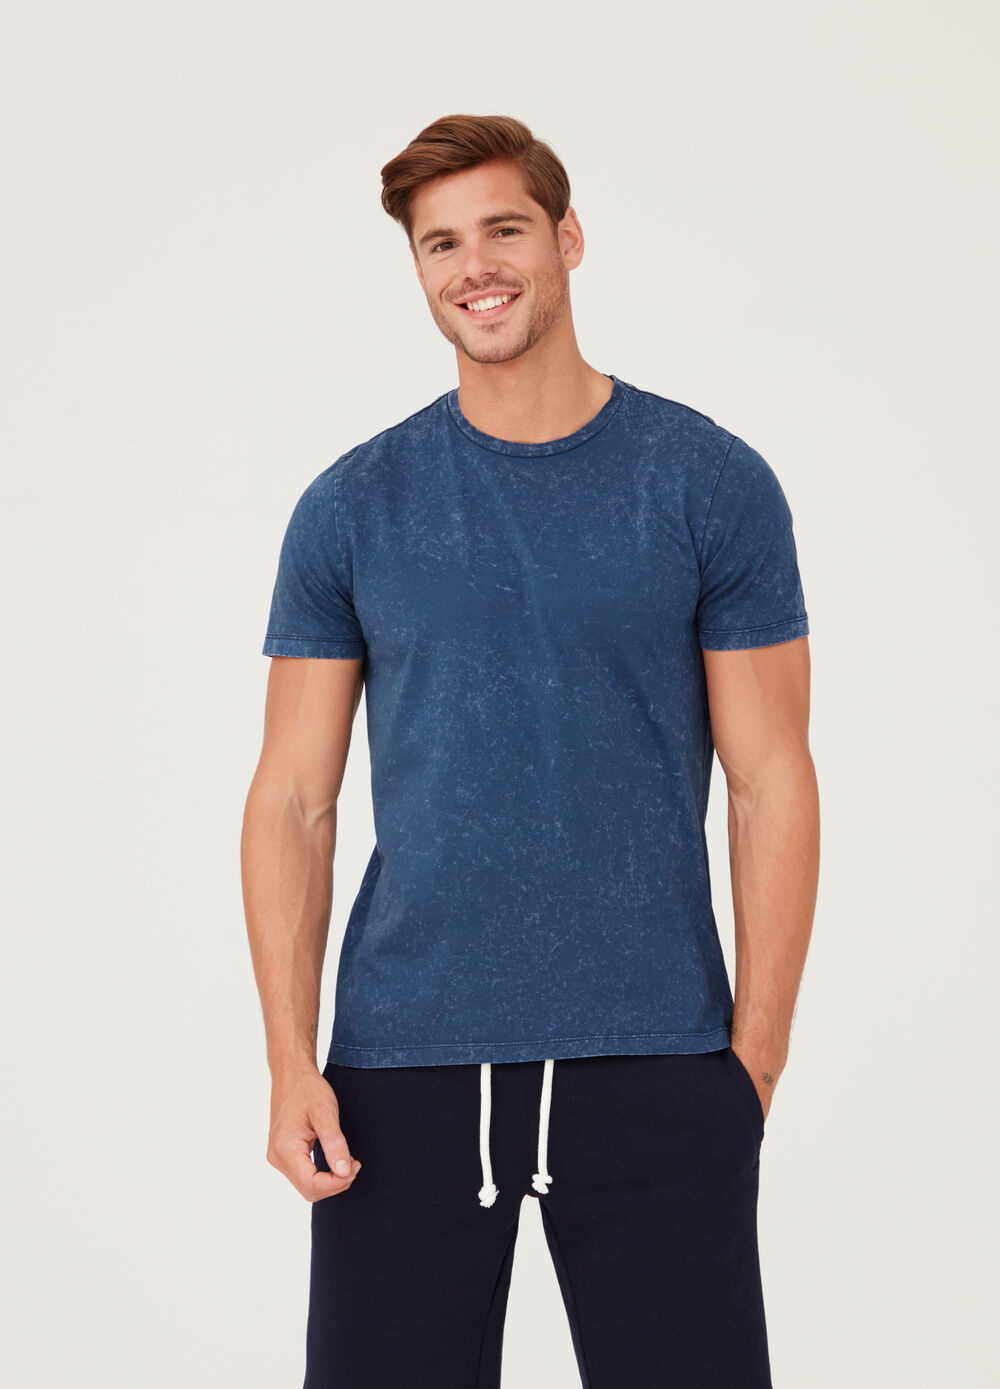 Vintage-effect T-shirt with round neck